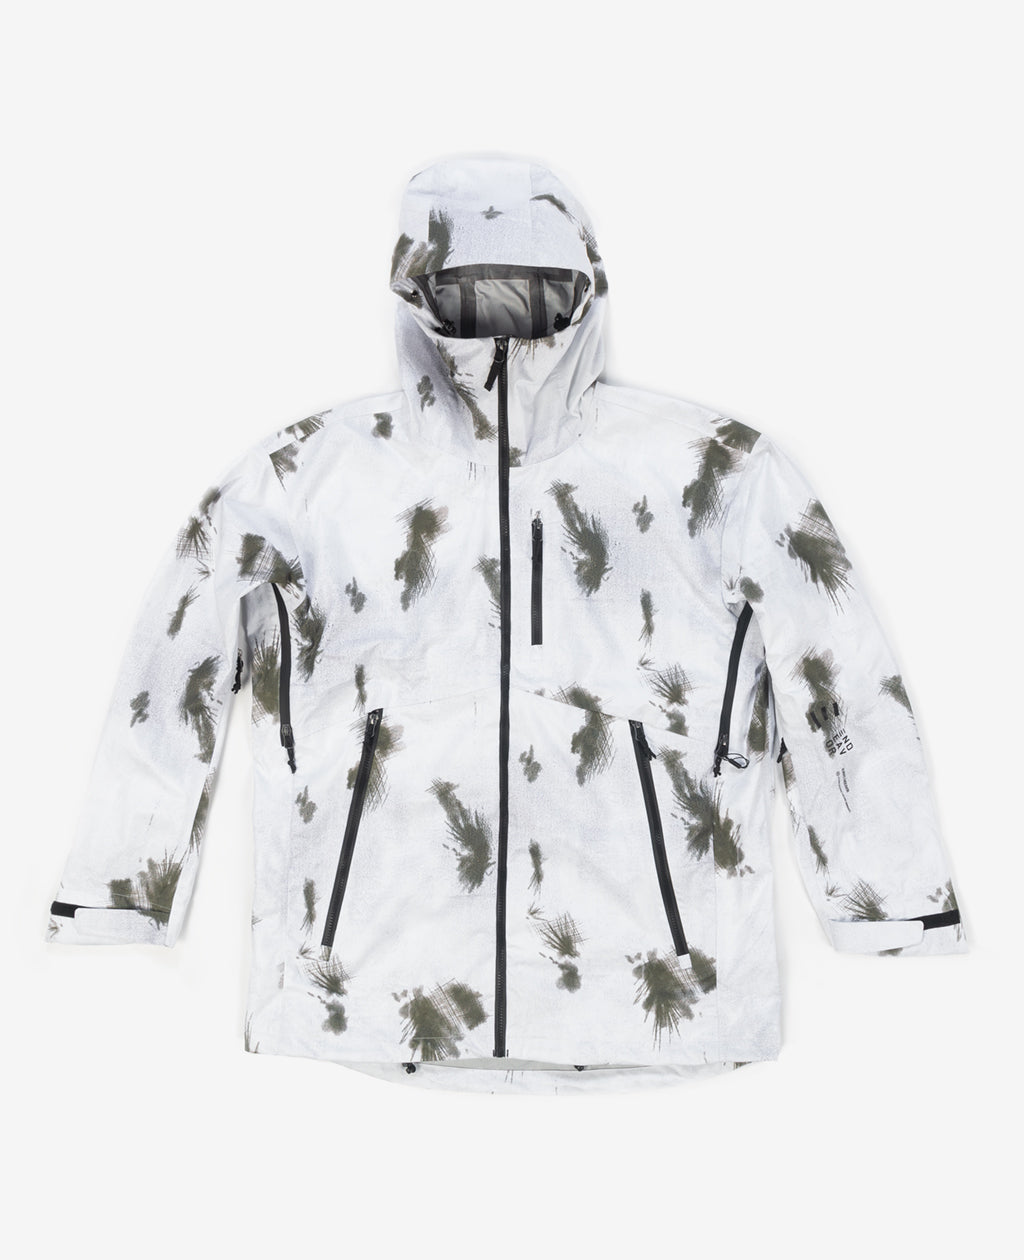 Endeavor 3L Shelter Jacket